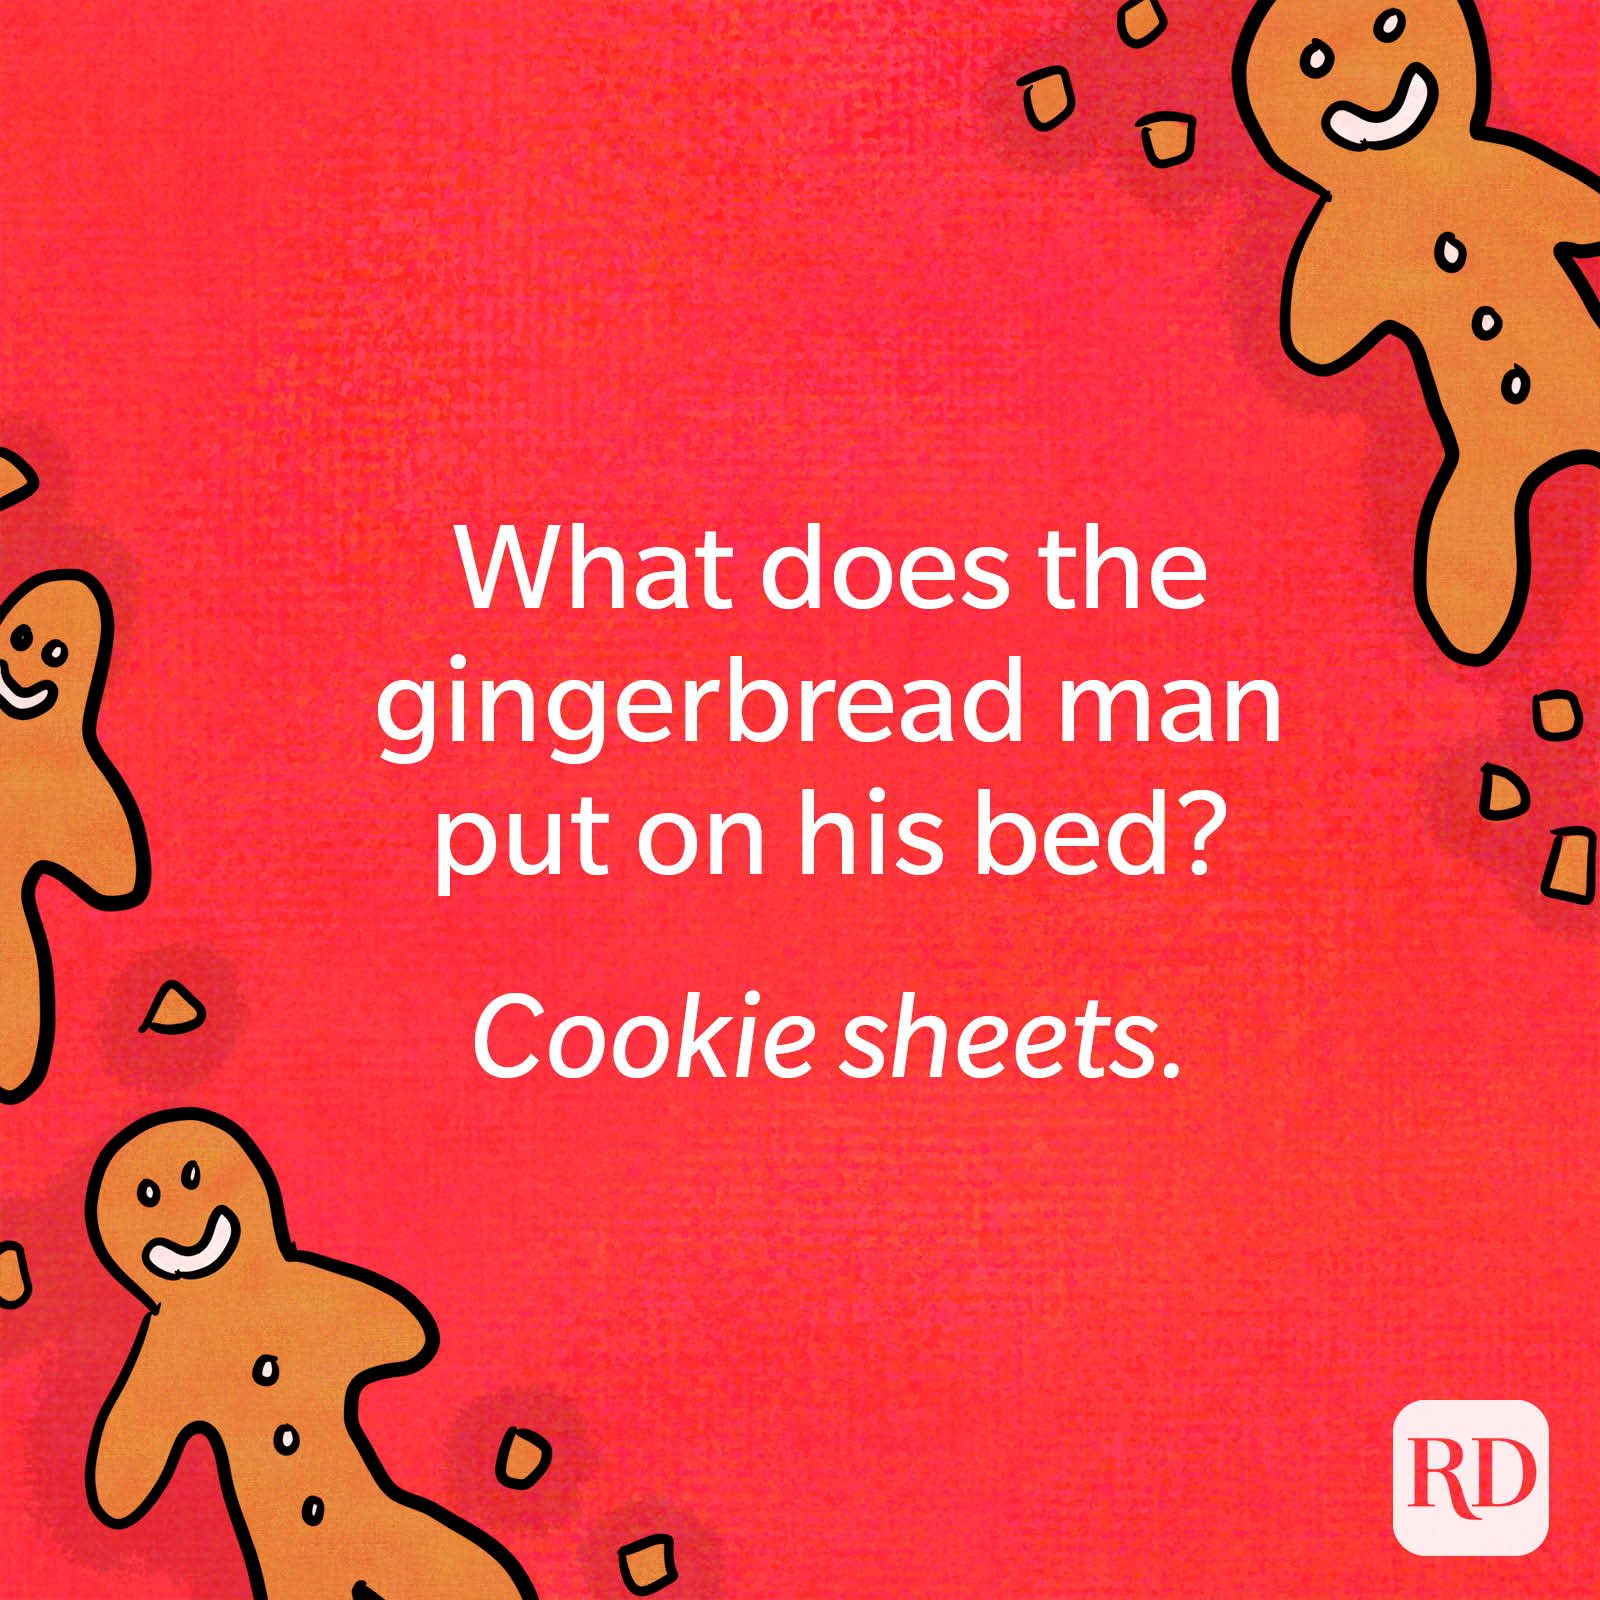 What does the gingerbread man put on his bed?